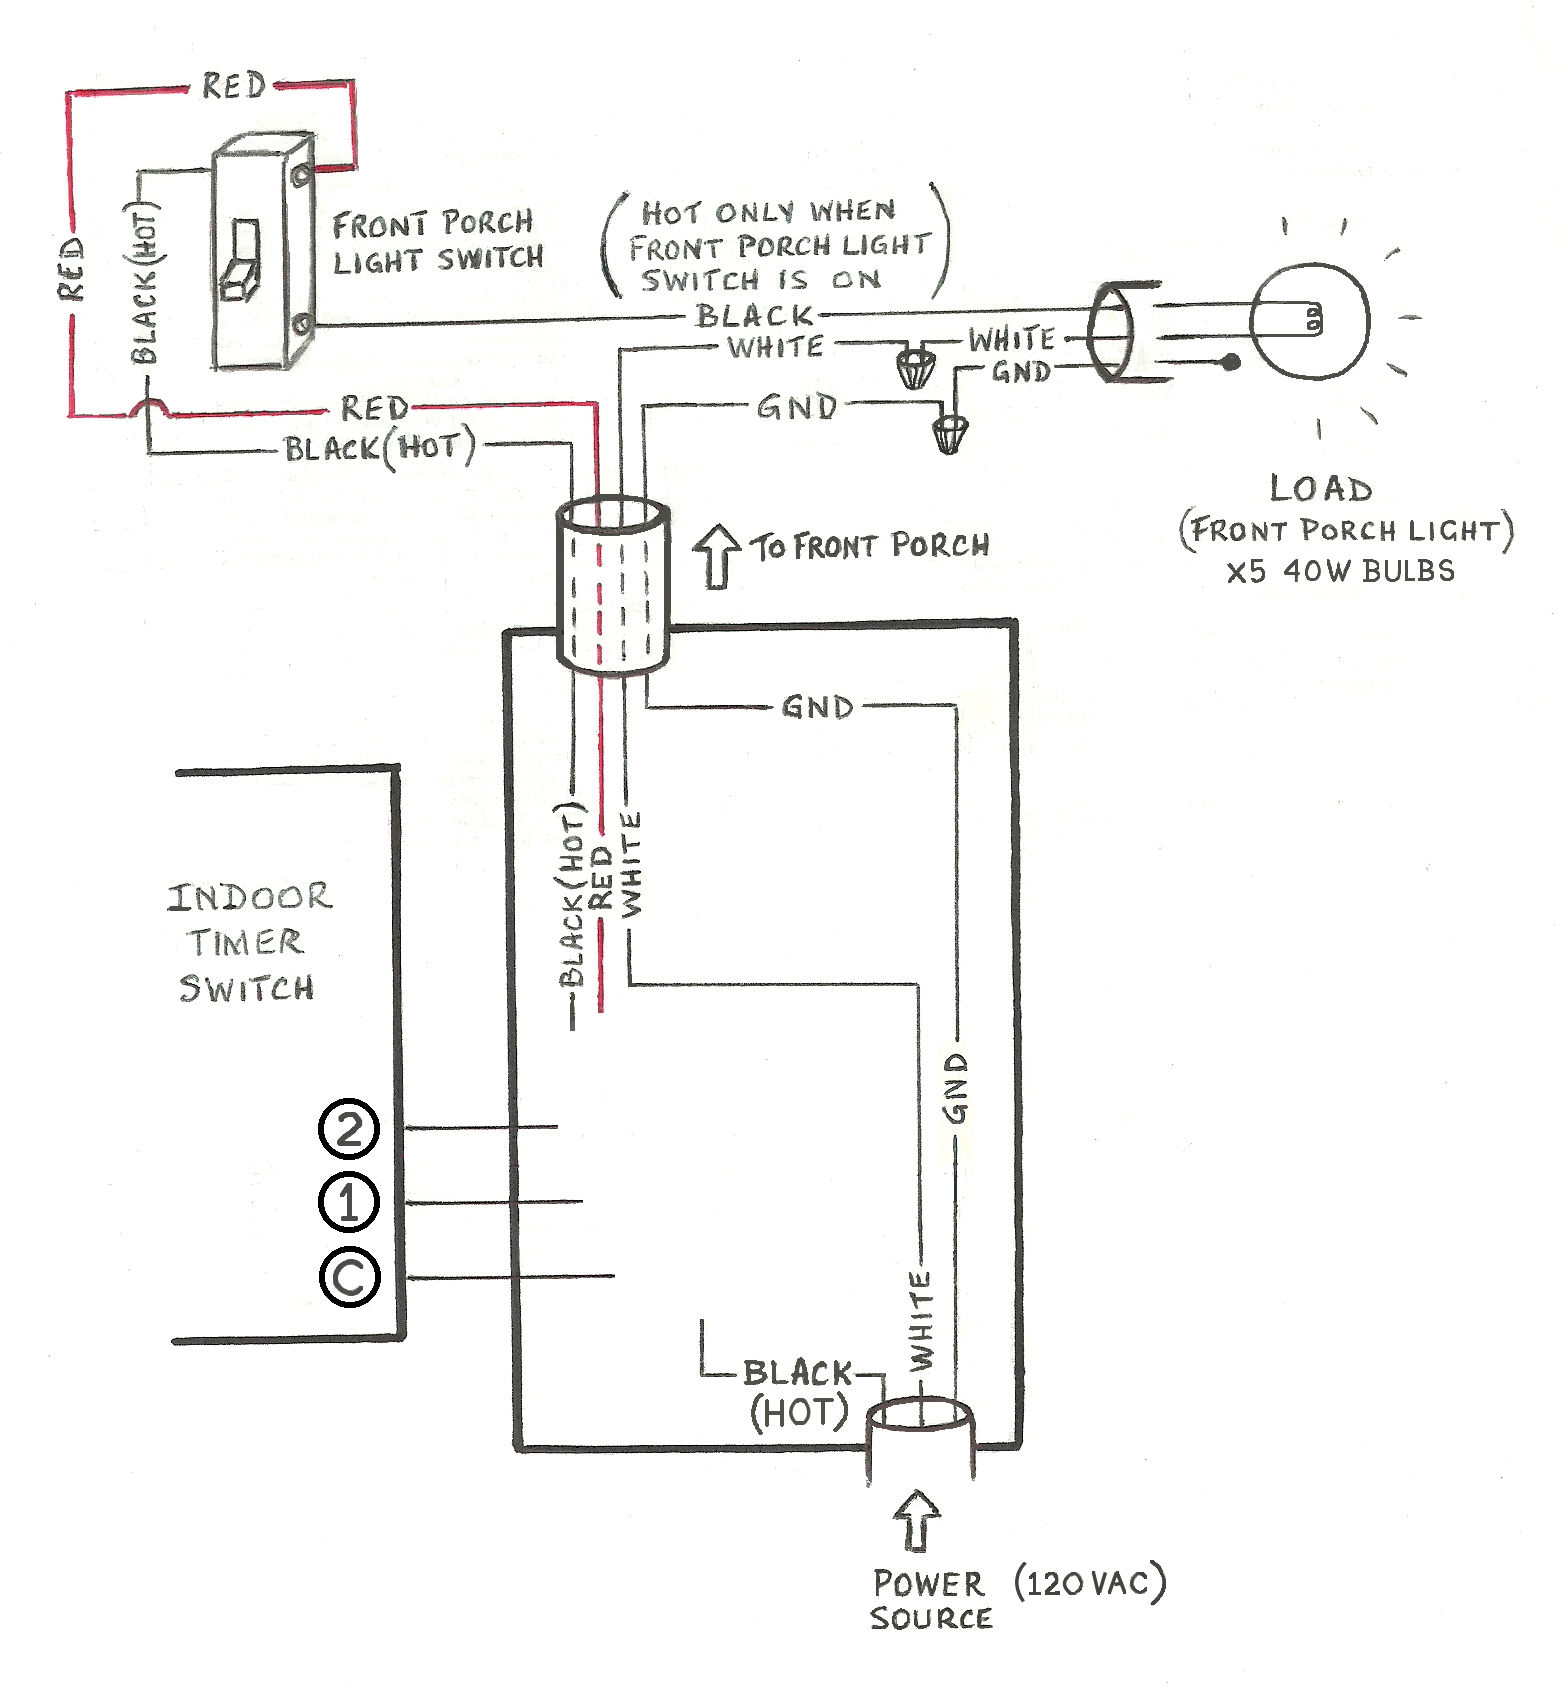 hight resolution of need help wiring a 3 way honeywell digital timer switch home improvement stack exchange